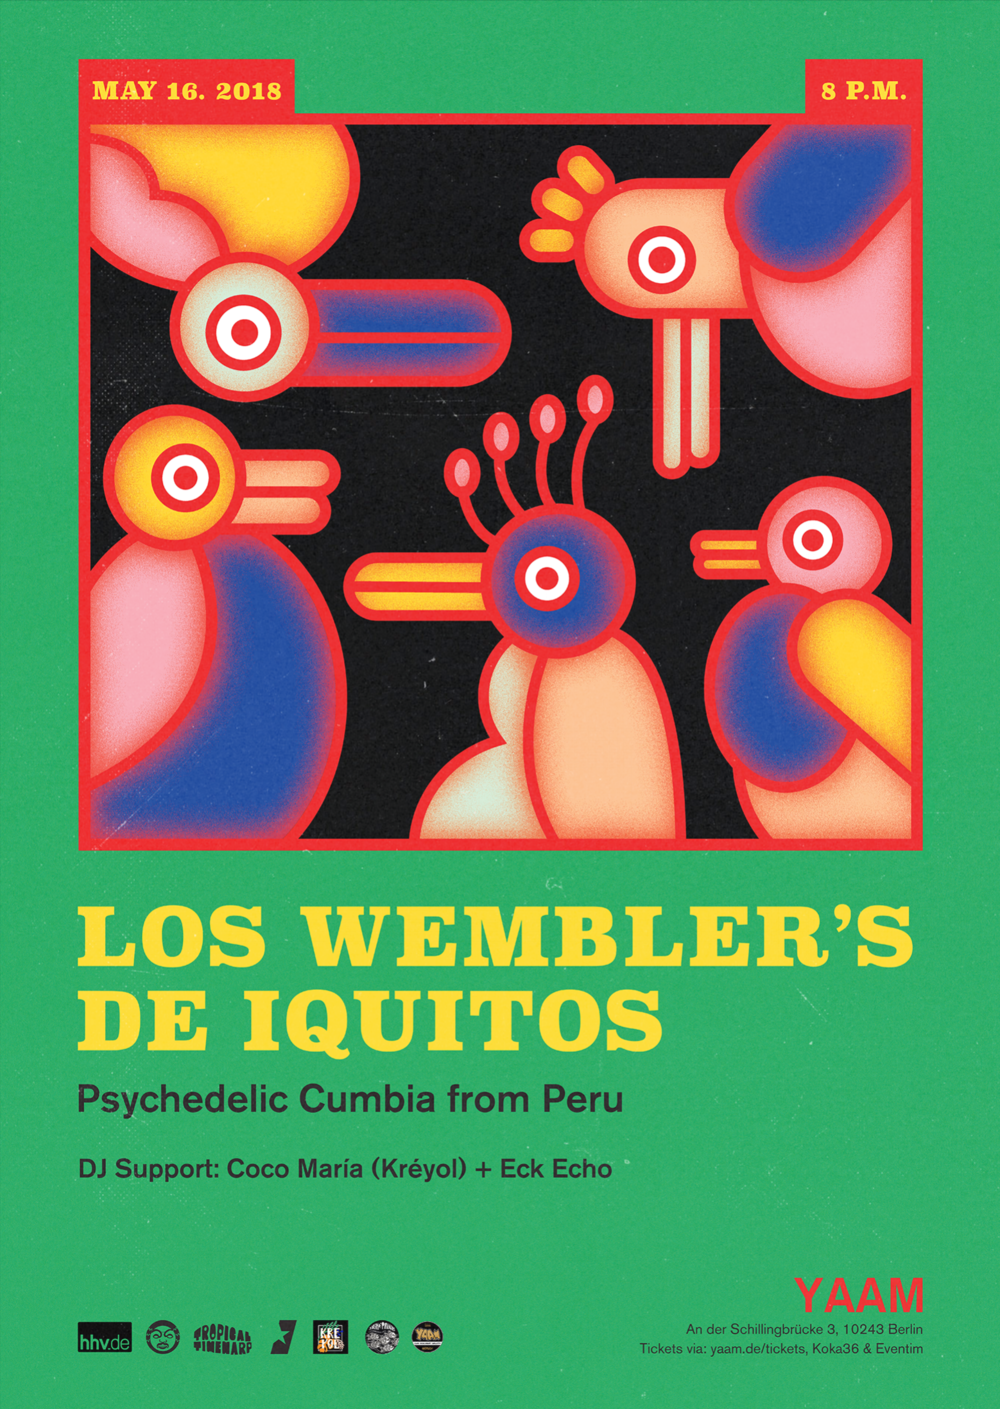 Poster for Wembler's de Iquitos in Berlin